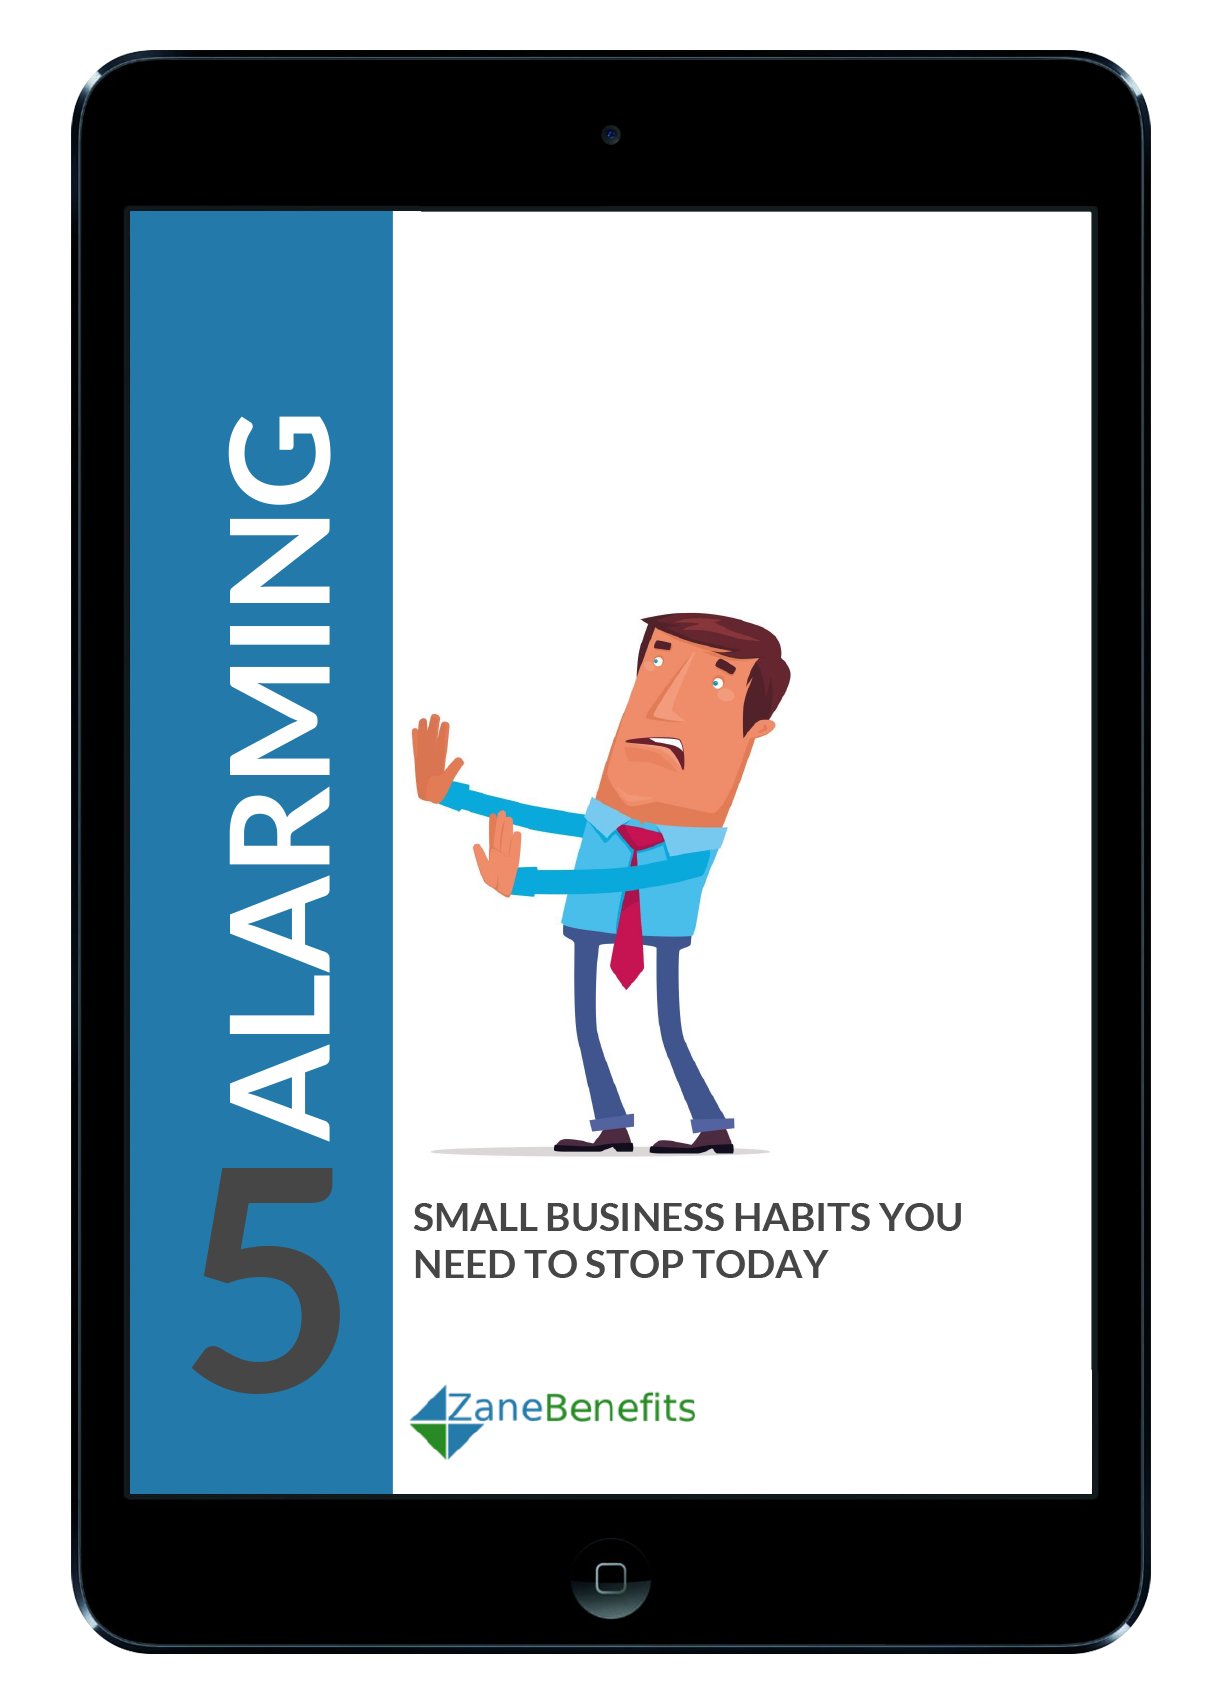 5 Alarming Small Business Habits You Need to Stop Today